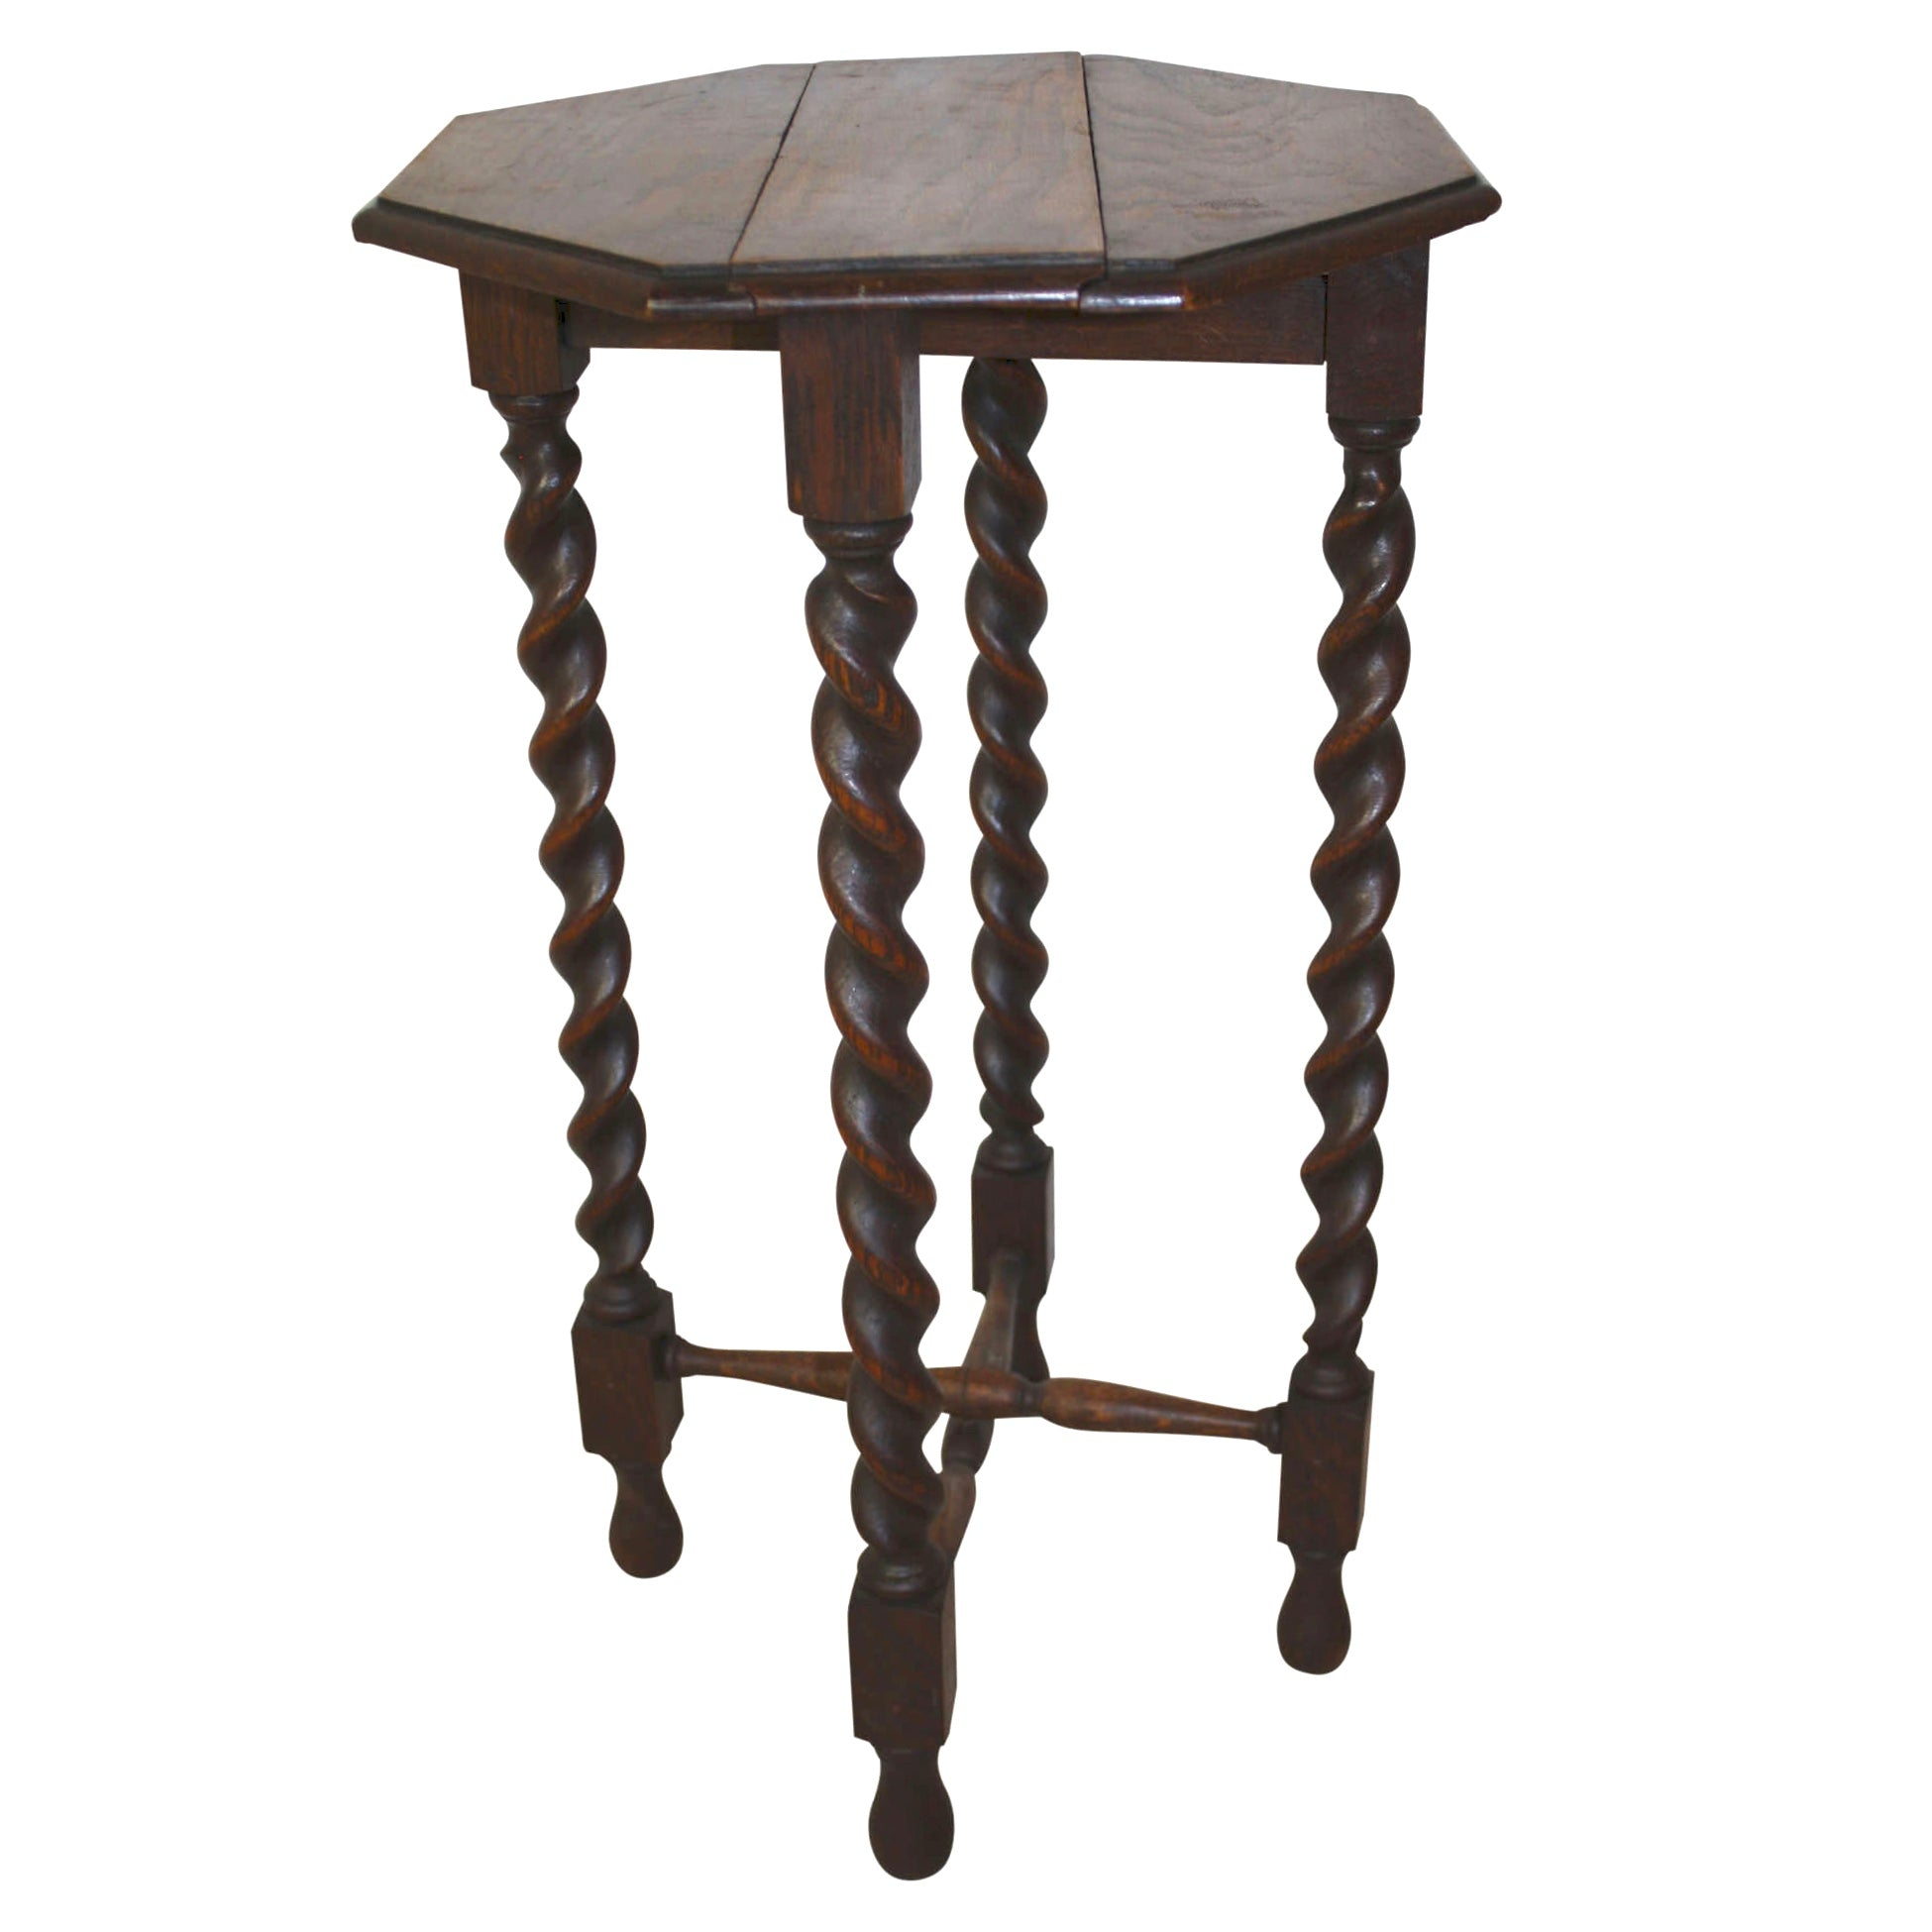 Side Table with Barley Twist Legs